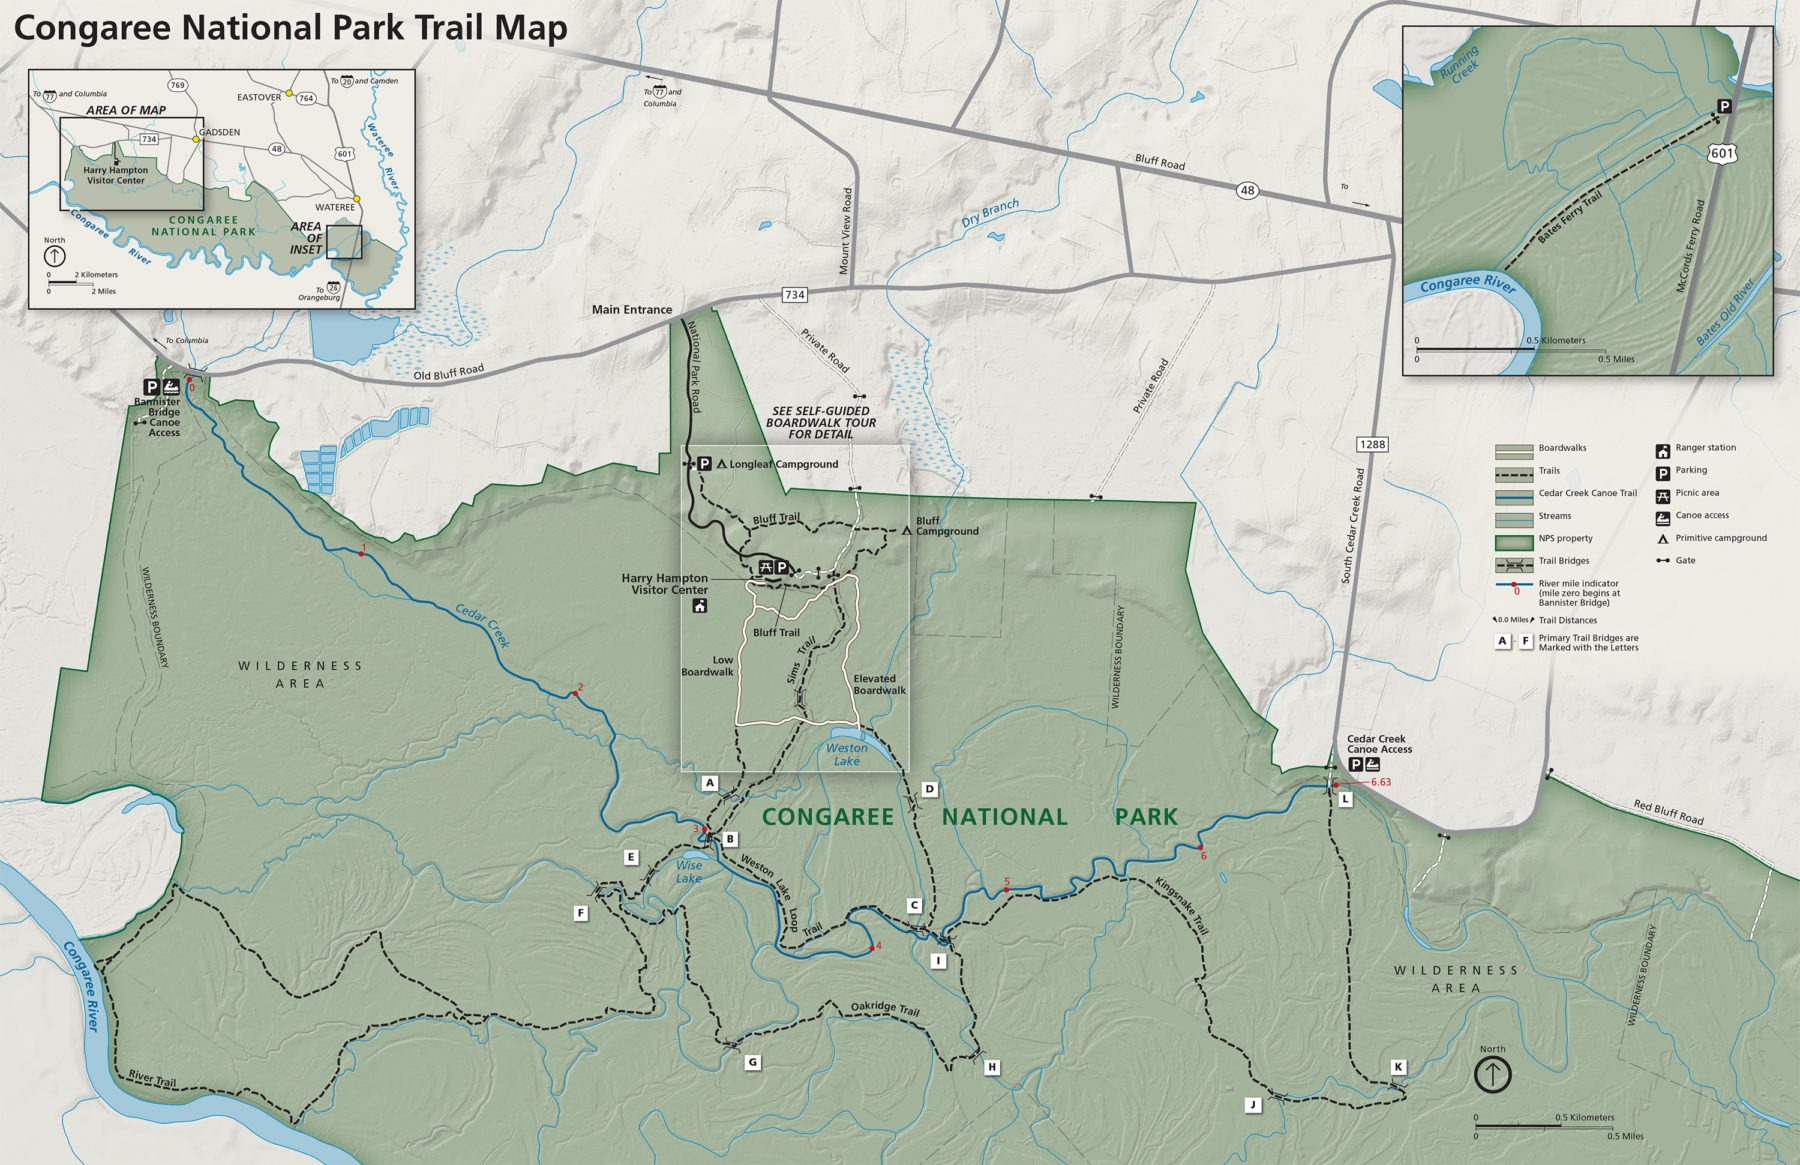 Congaree National Park hiking trails map.